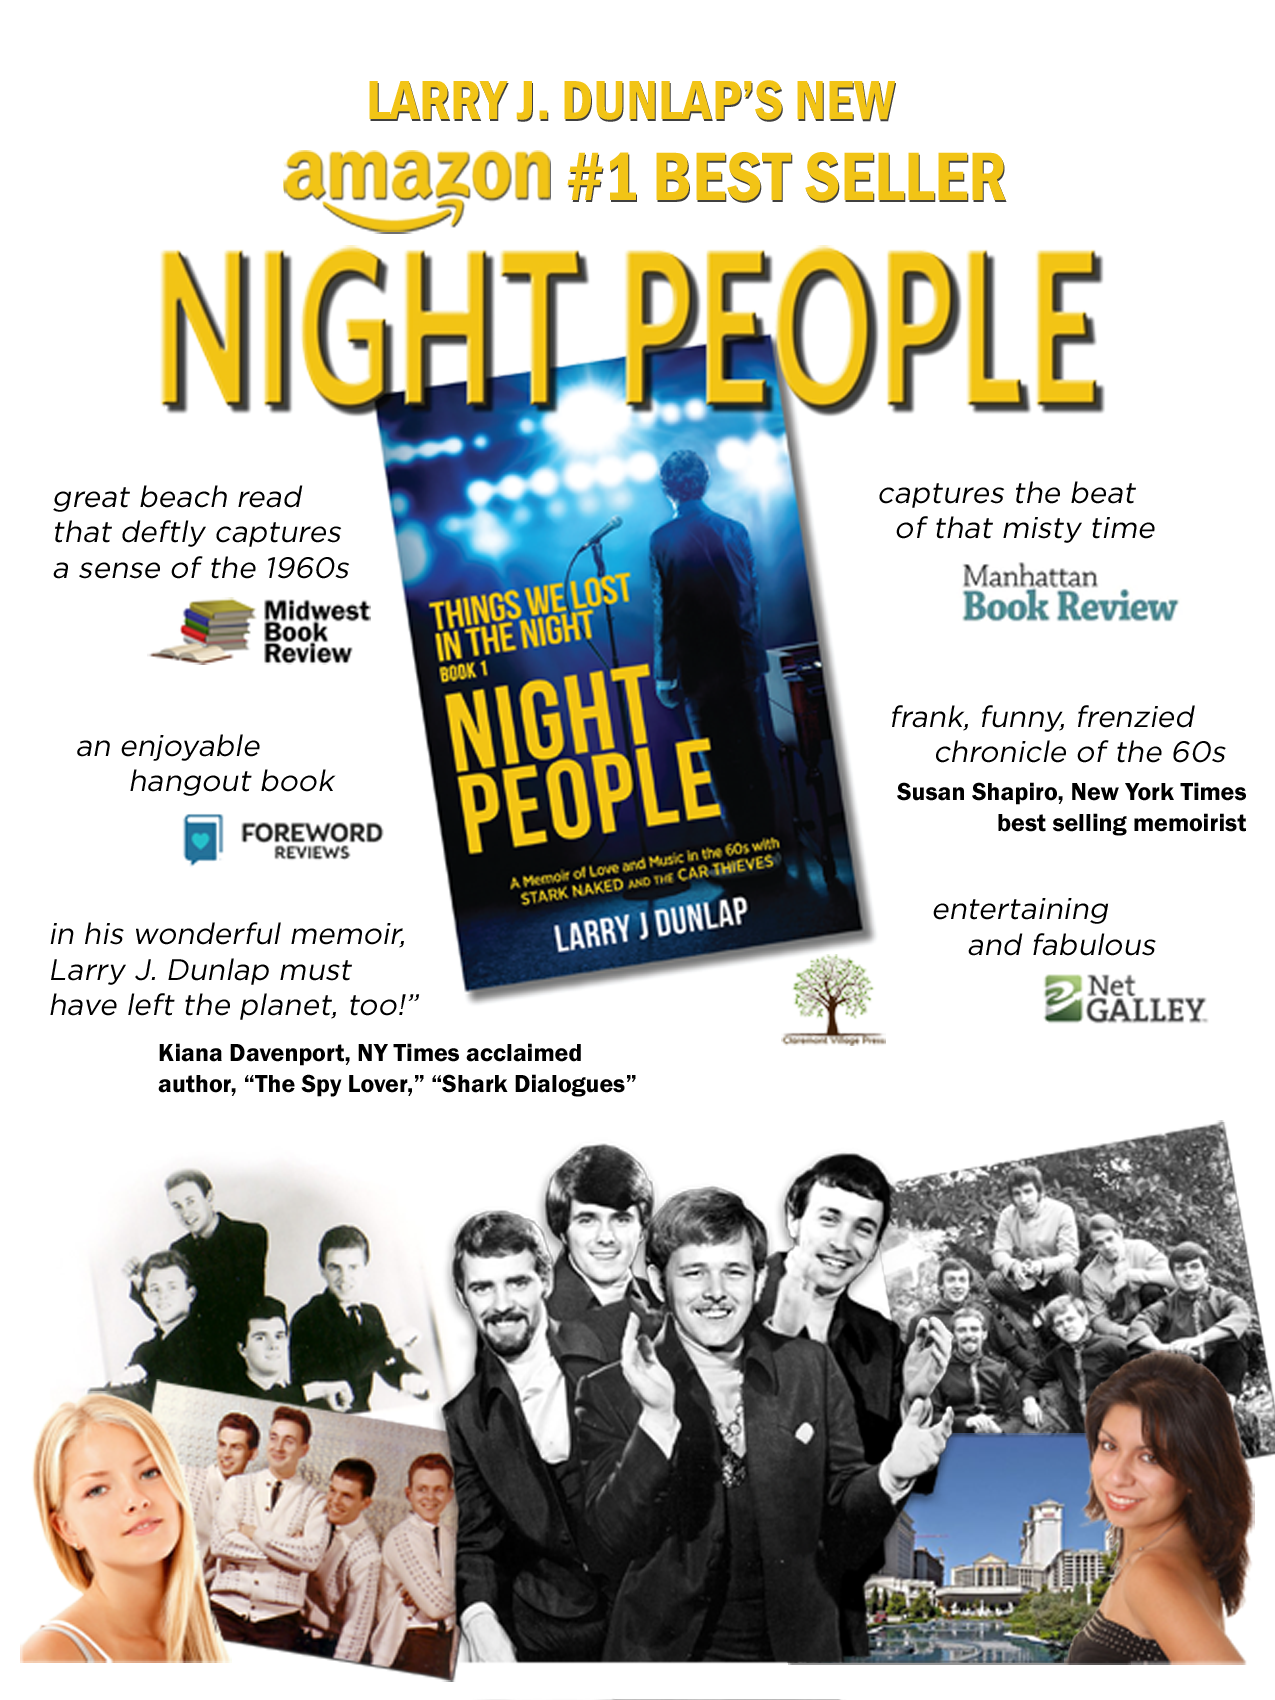 Night People, Book Signing - Book 1 - Things We Lost in the Night, a memoir of love and music in the 60s with Stark Naked and the Car Thieves